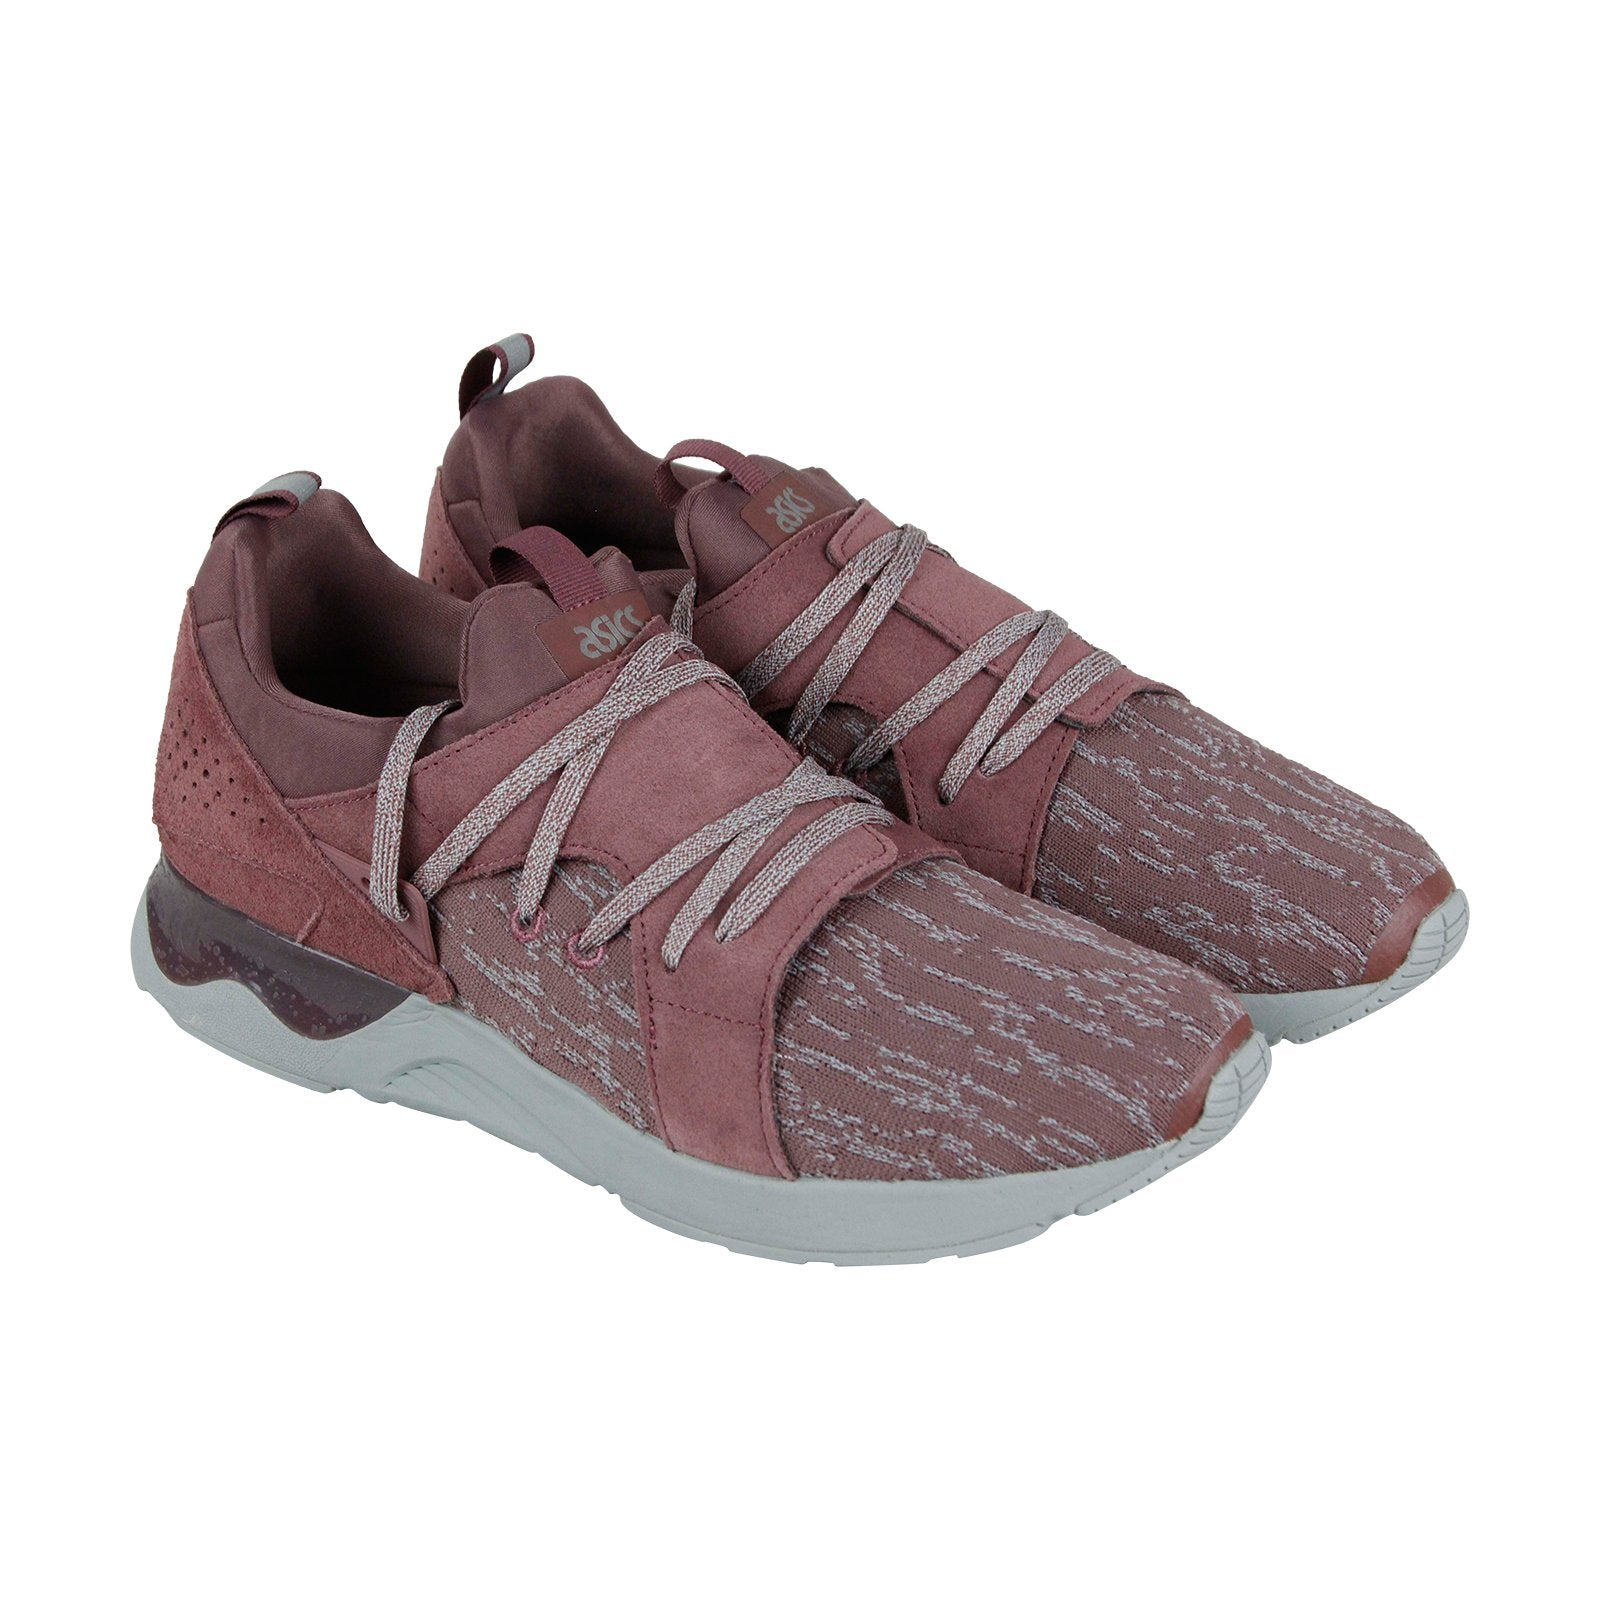 sale retailer 25446 7beef Asics Gel Lyte V Sanze Mens Pink Suede & Textile Low Top Sneakers Shoes